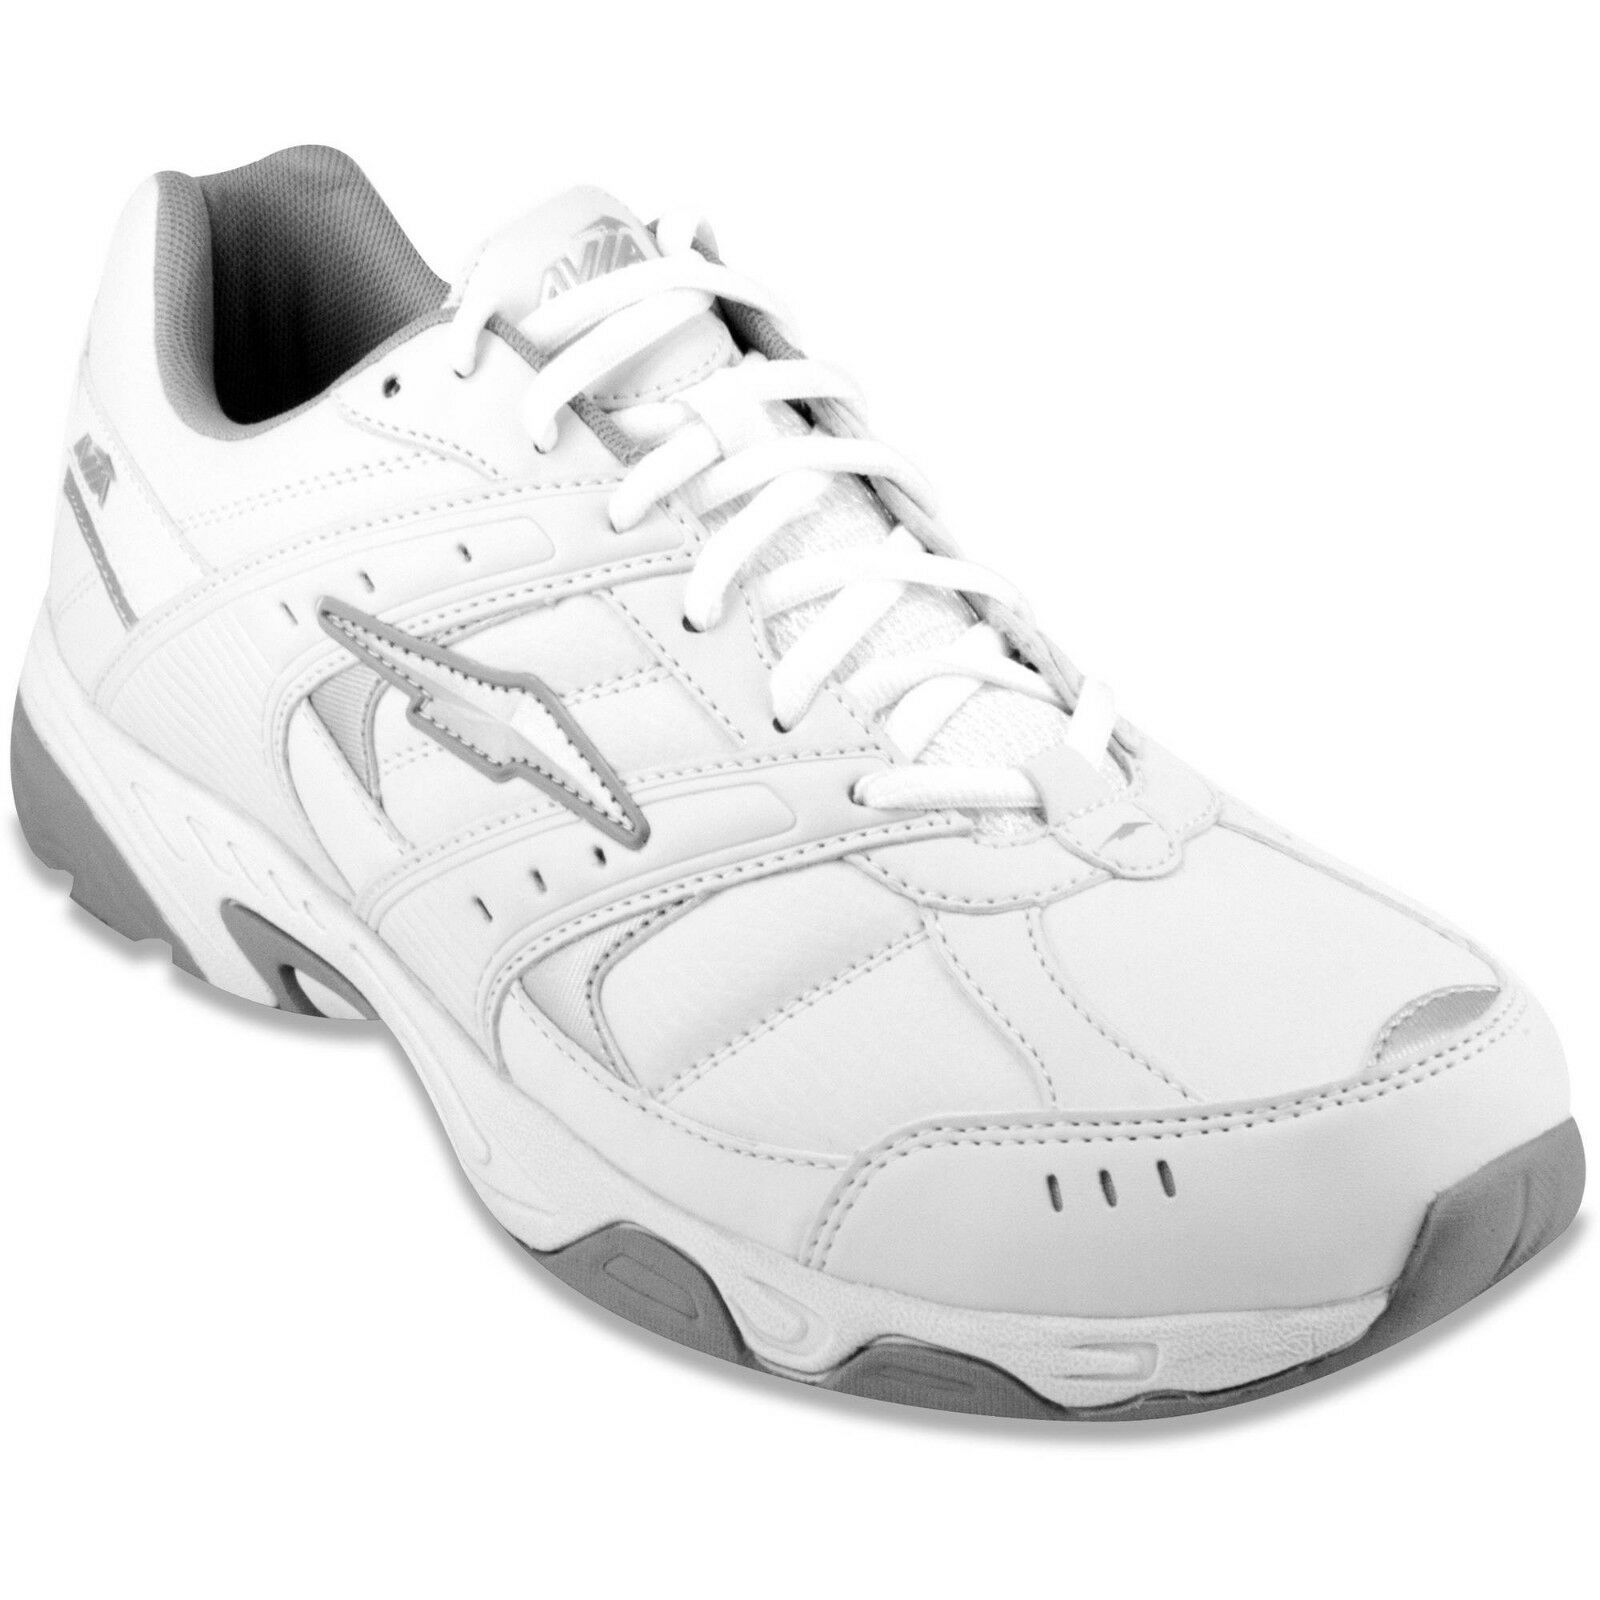 New in Box, Avia hommes Peter Walking Athletic Sneakers US hommes Chaussures Size-9 WIDE